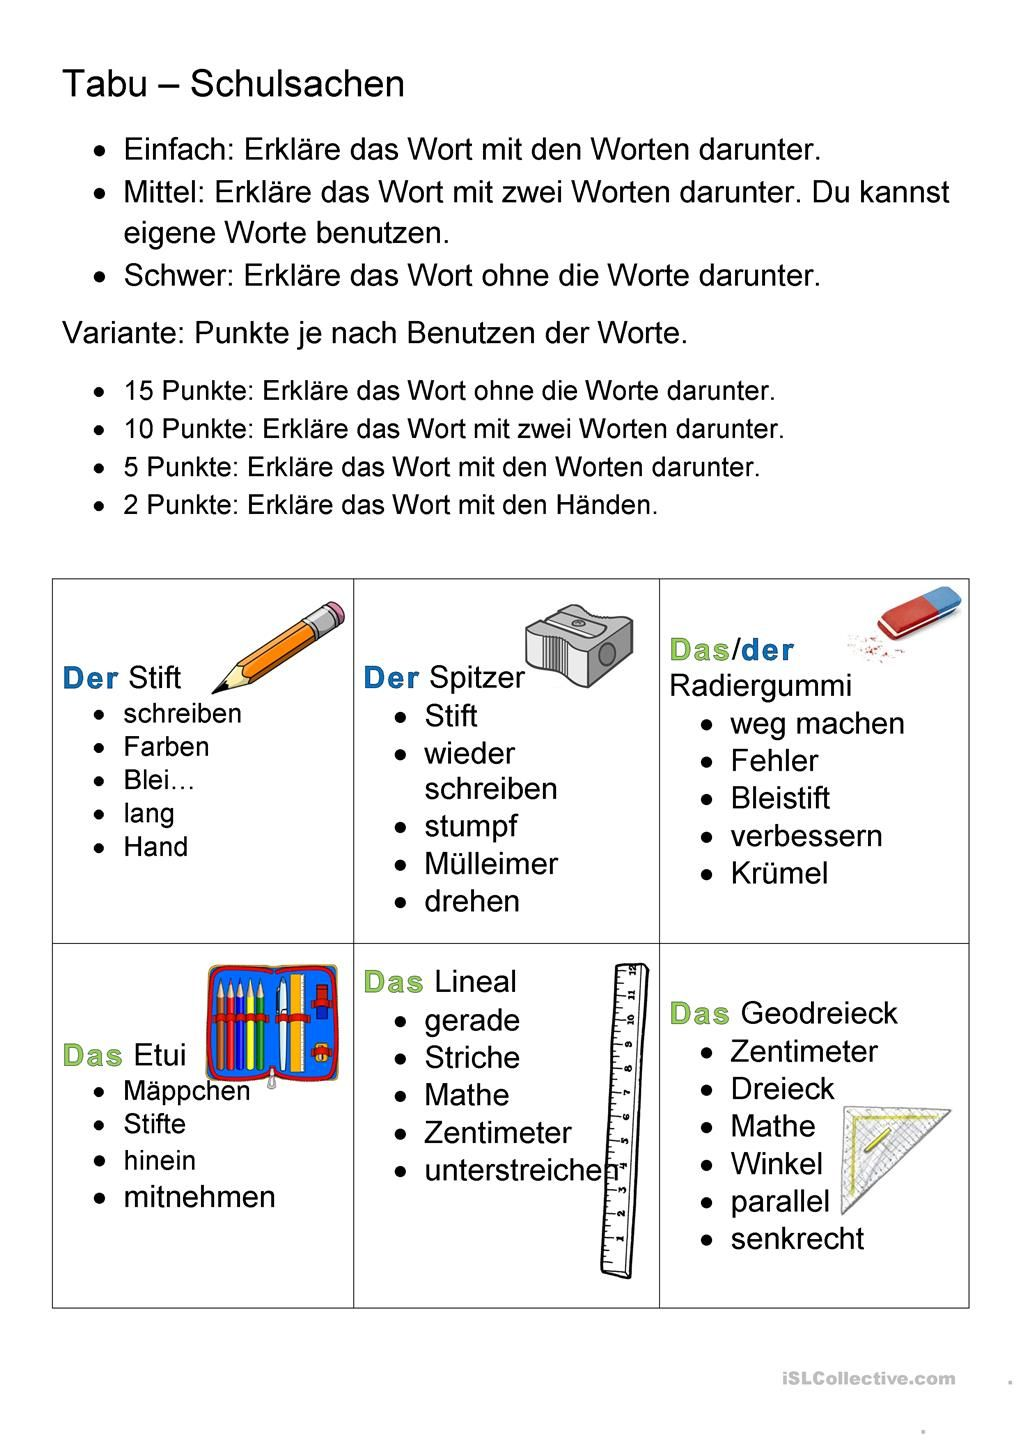 Schulsachen Tabu Differenziert | nemčina | Pinterest | German ...